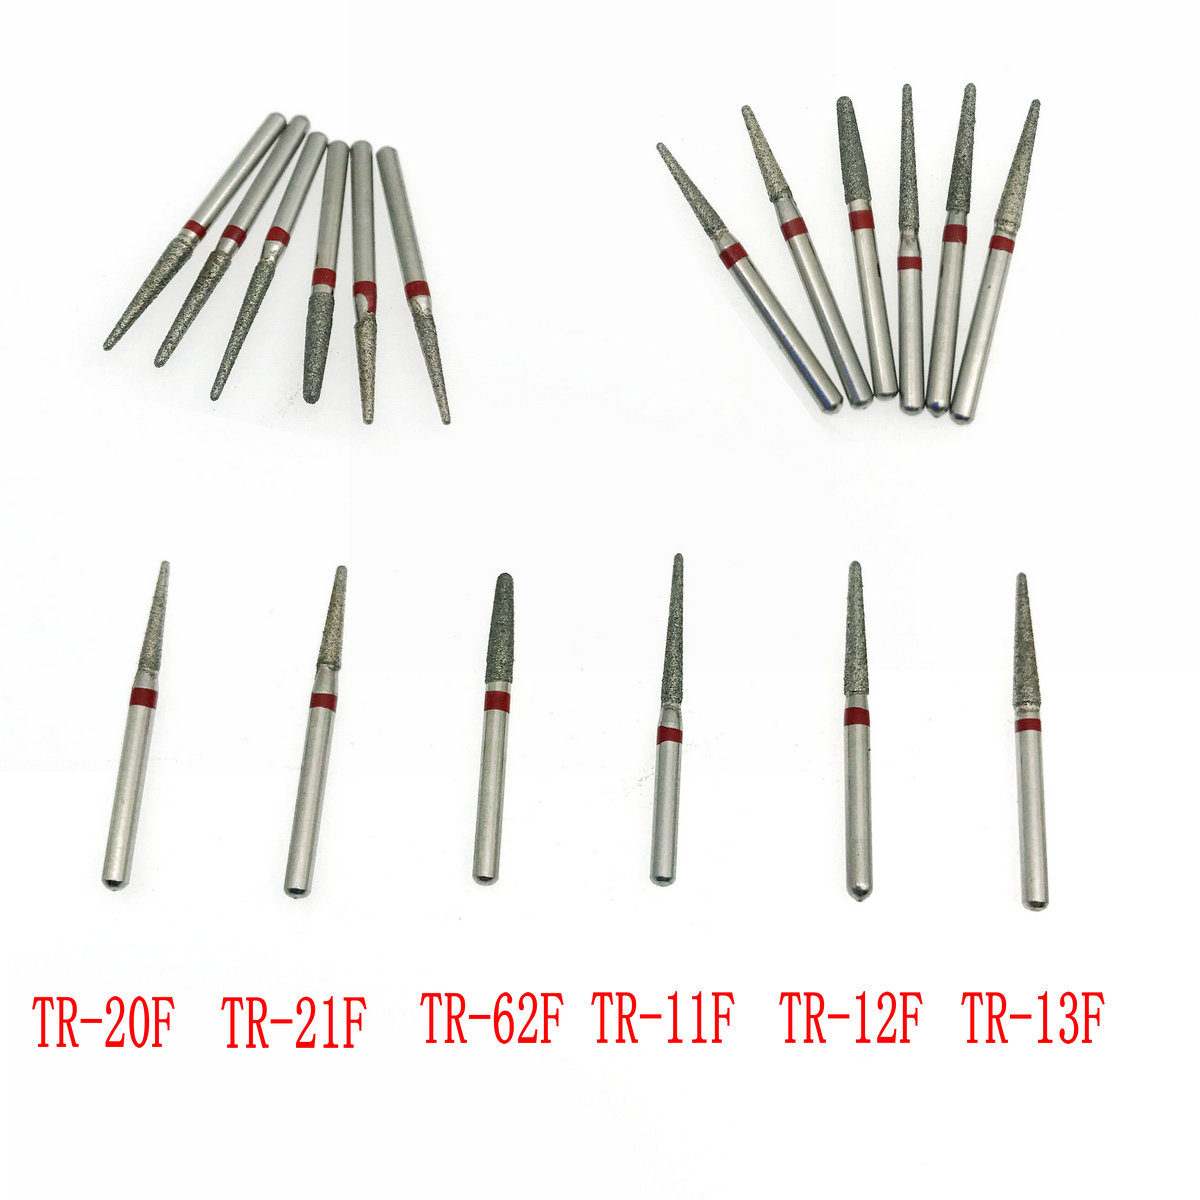 50Pcs Dental Diamond Burs Grit Red/Fine Fit High Speed Handpiece 1.6mm